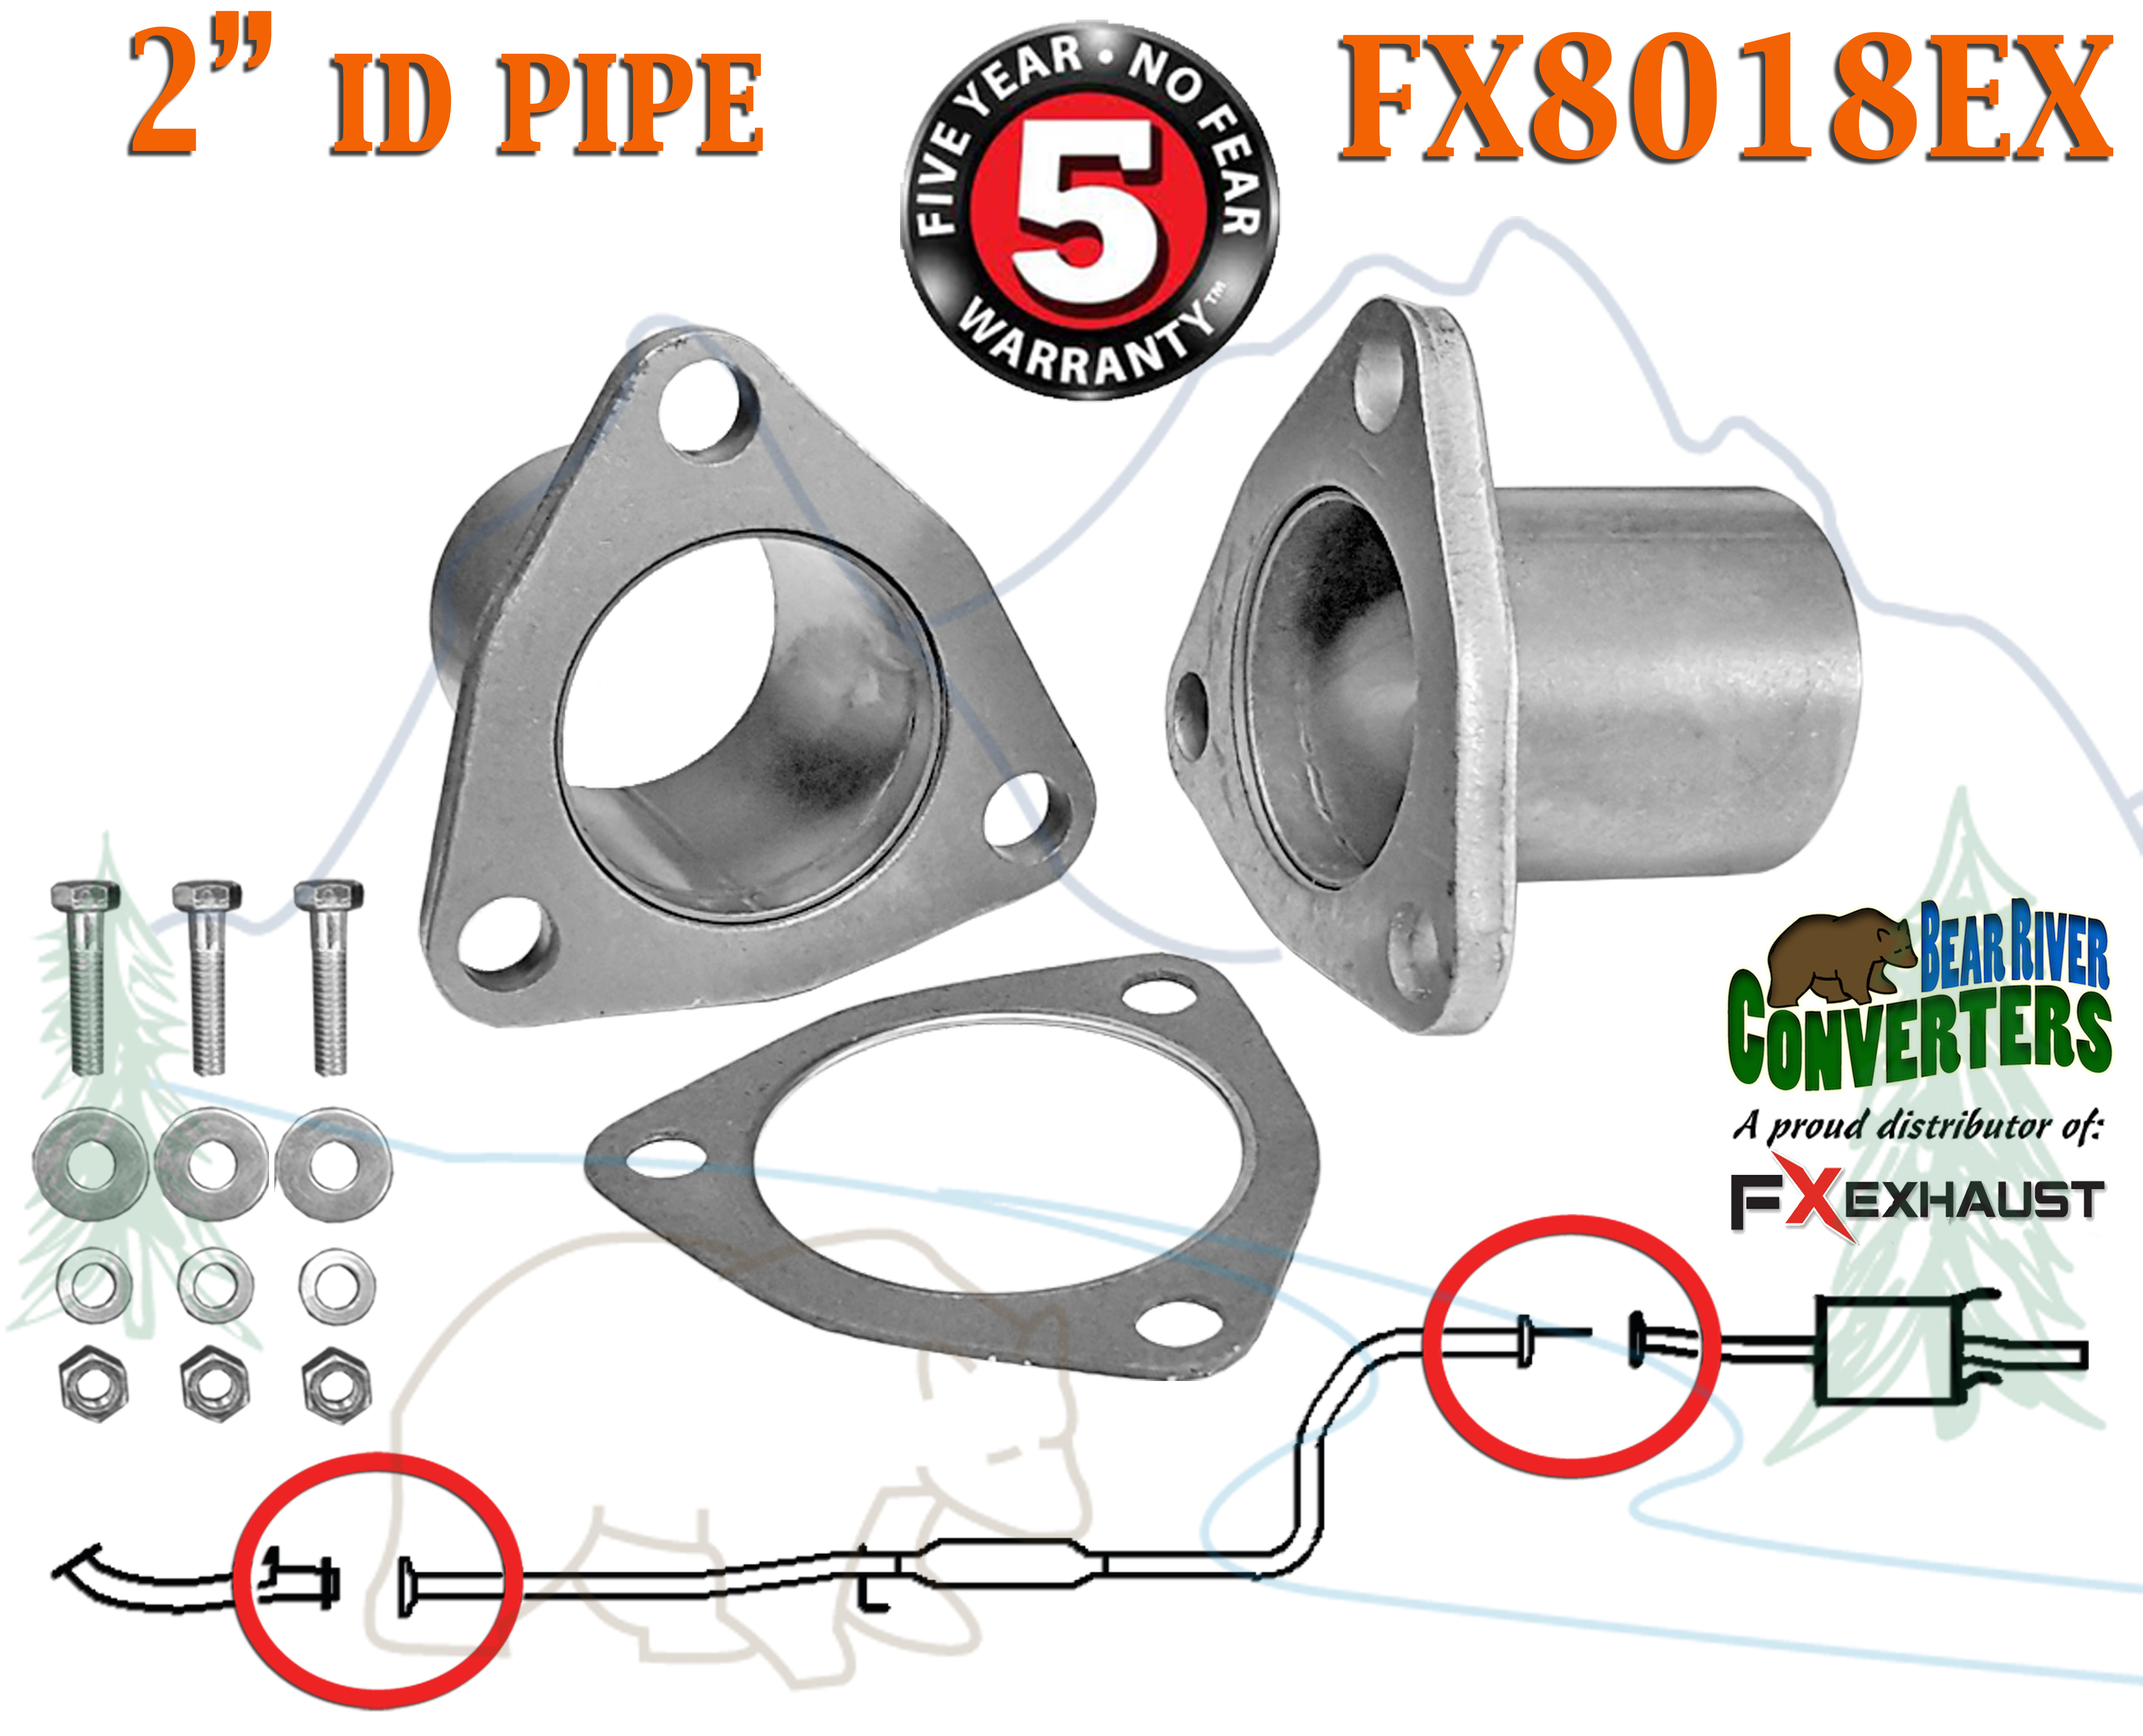 "FX8018EX 2"" ID Universal QuickFix Exhaust Triangle Flange Repair"